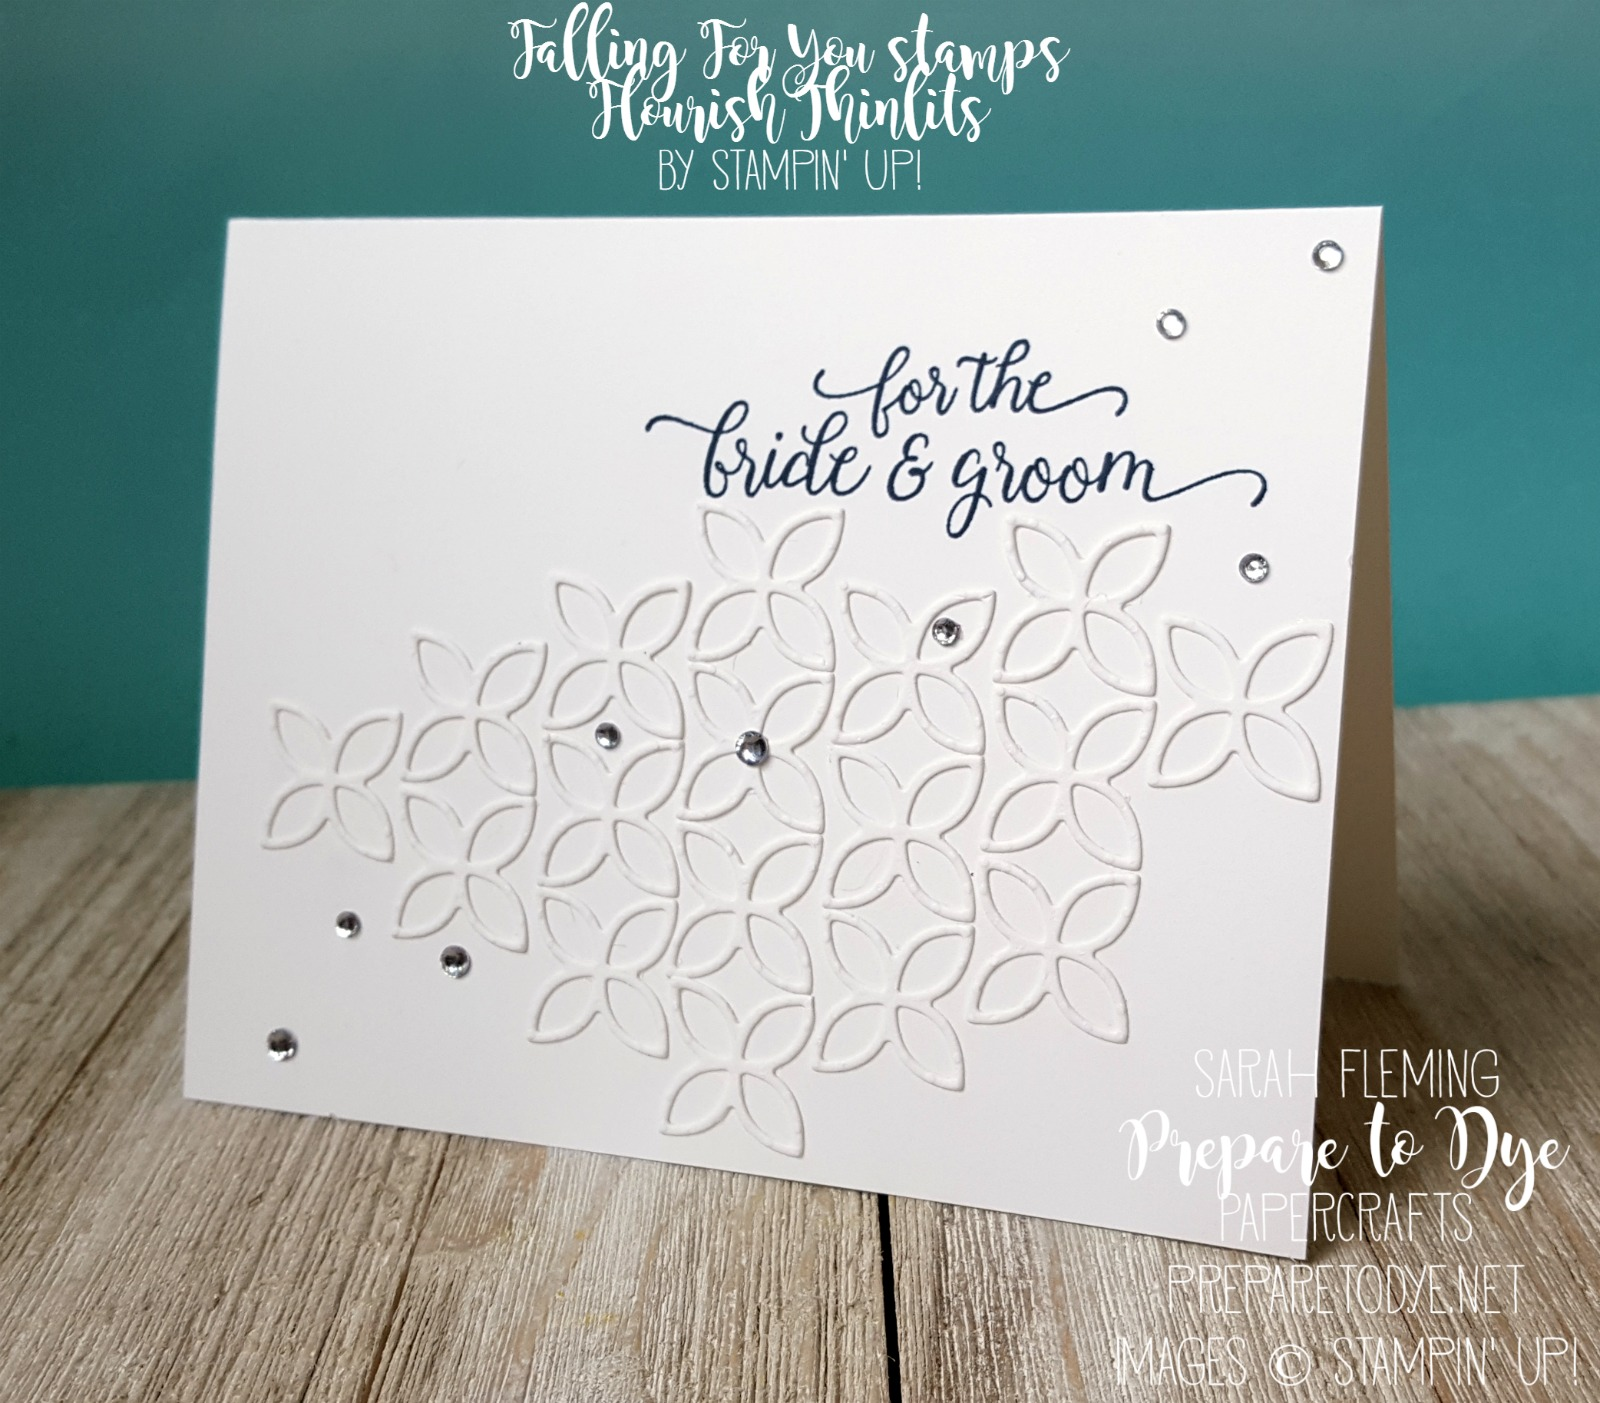 Stampin' Up! Falling For You stamps and Flourish Thinlits - clean and simple - CAS - handmade wedding card - Kylie Bertucci's International Blog Highlights - Sarah Fleming - Prepare to Dye Papercrafts